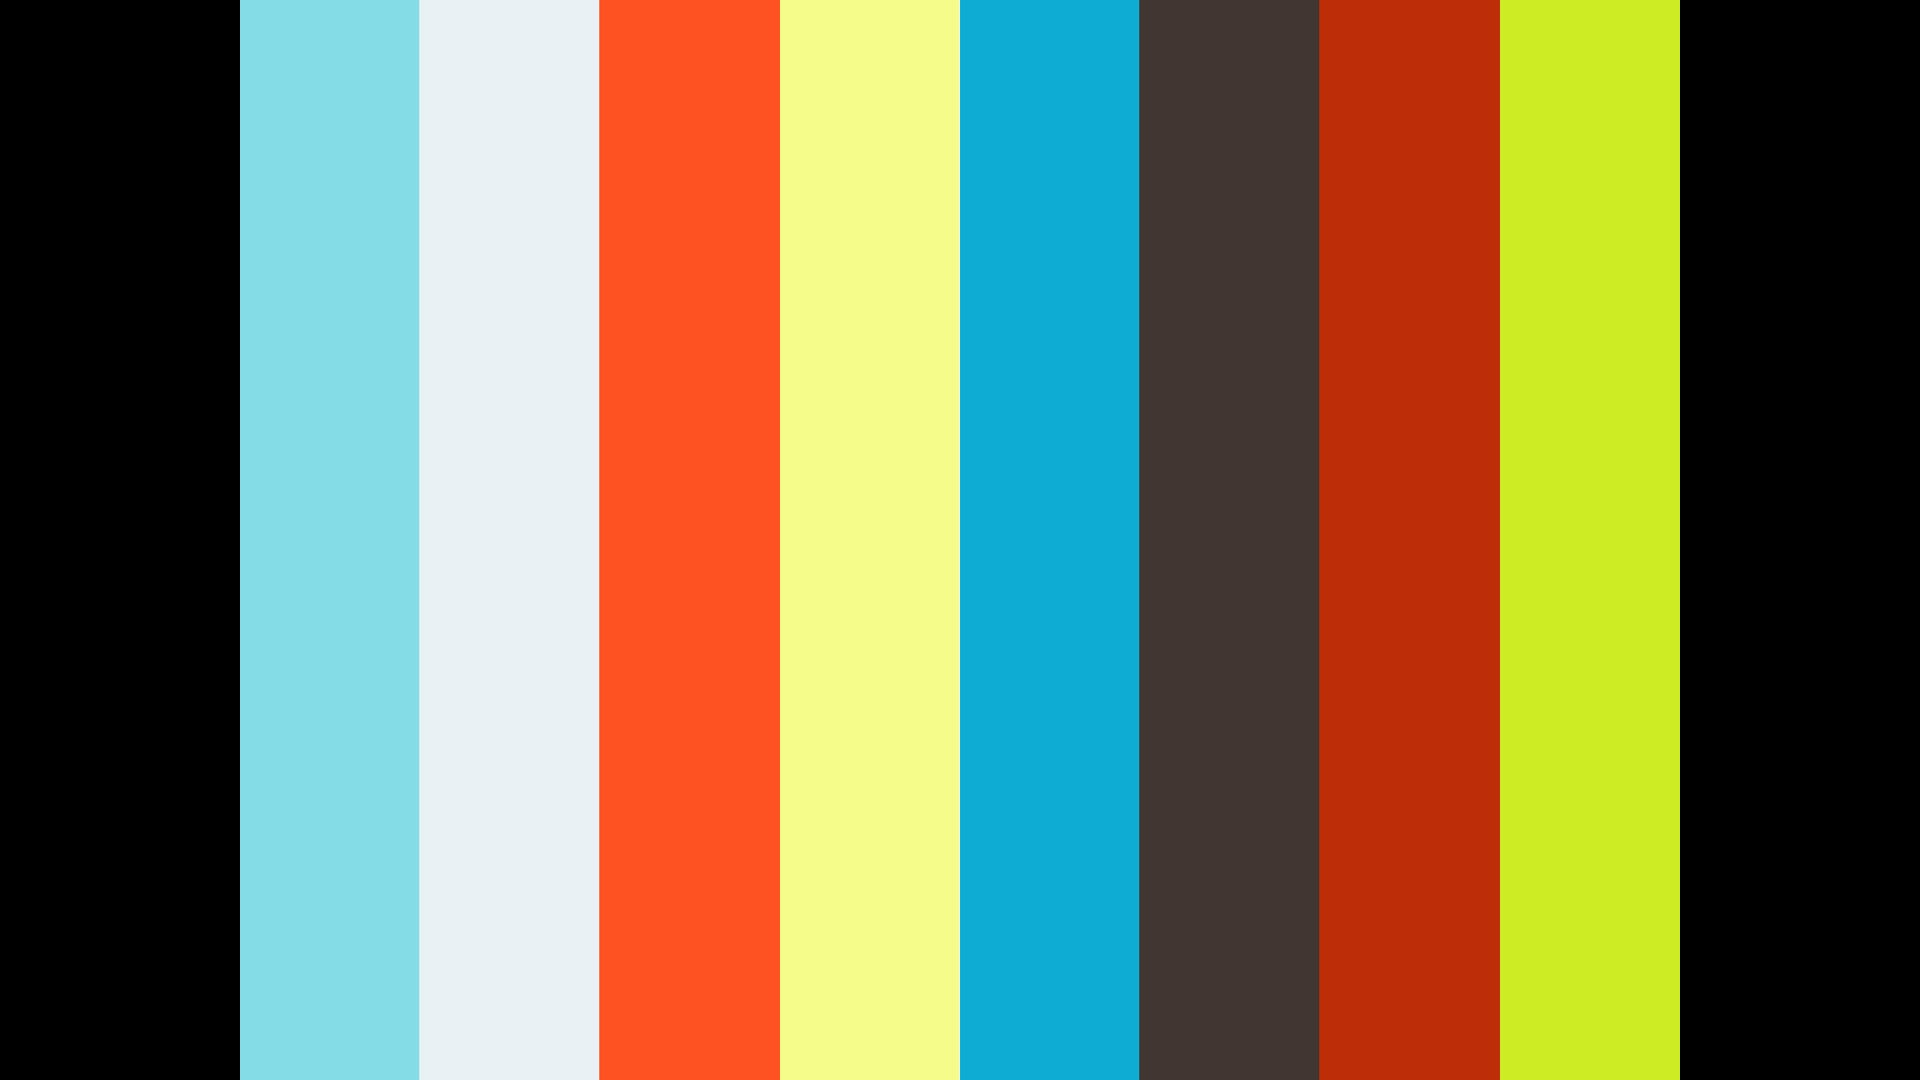 WE WIN WE WIN WE WIN: Bethesda Church of God